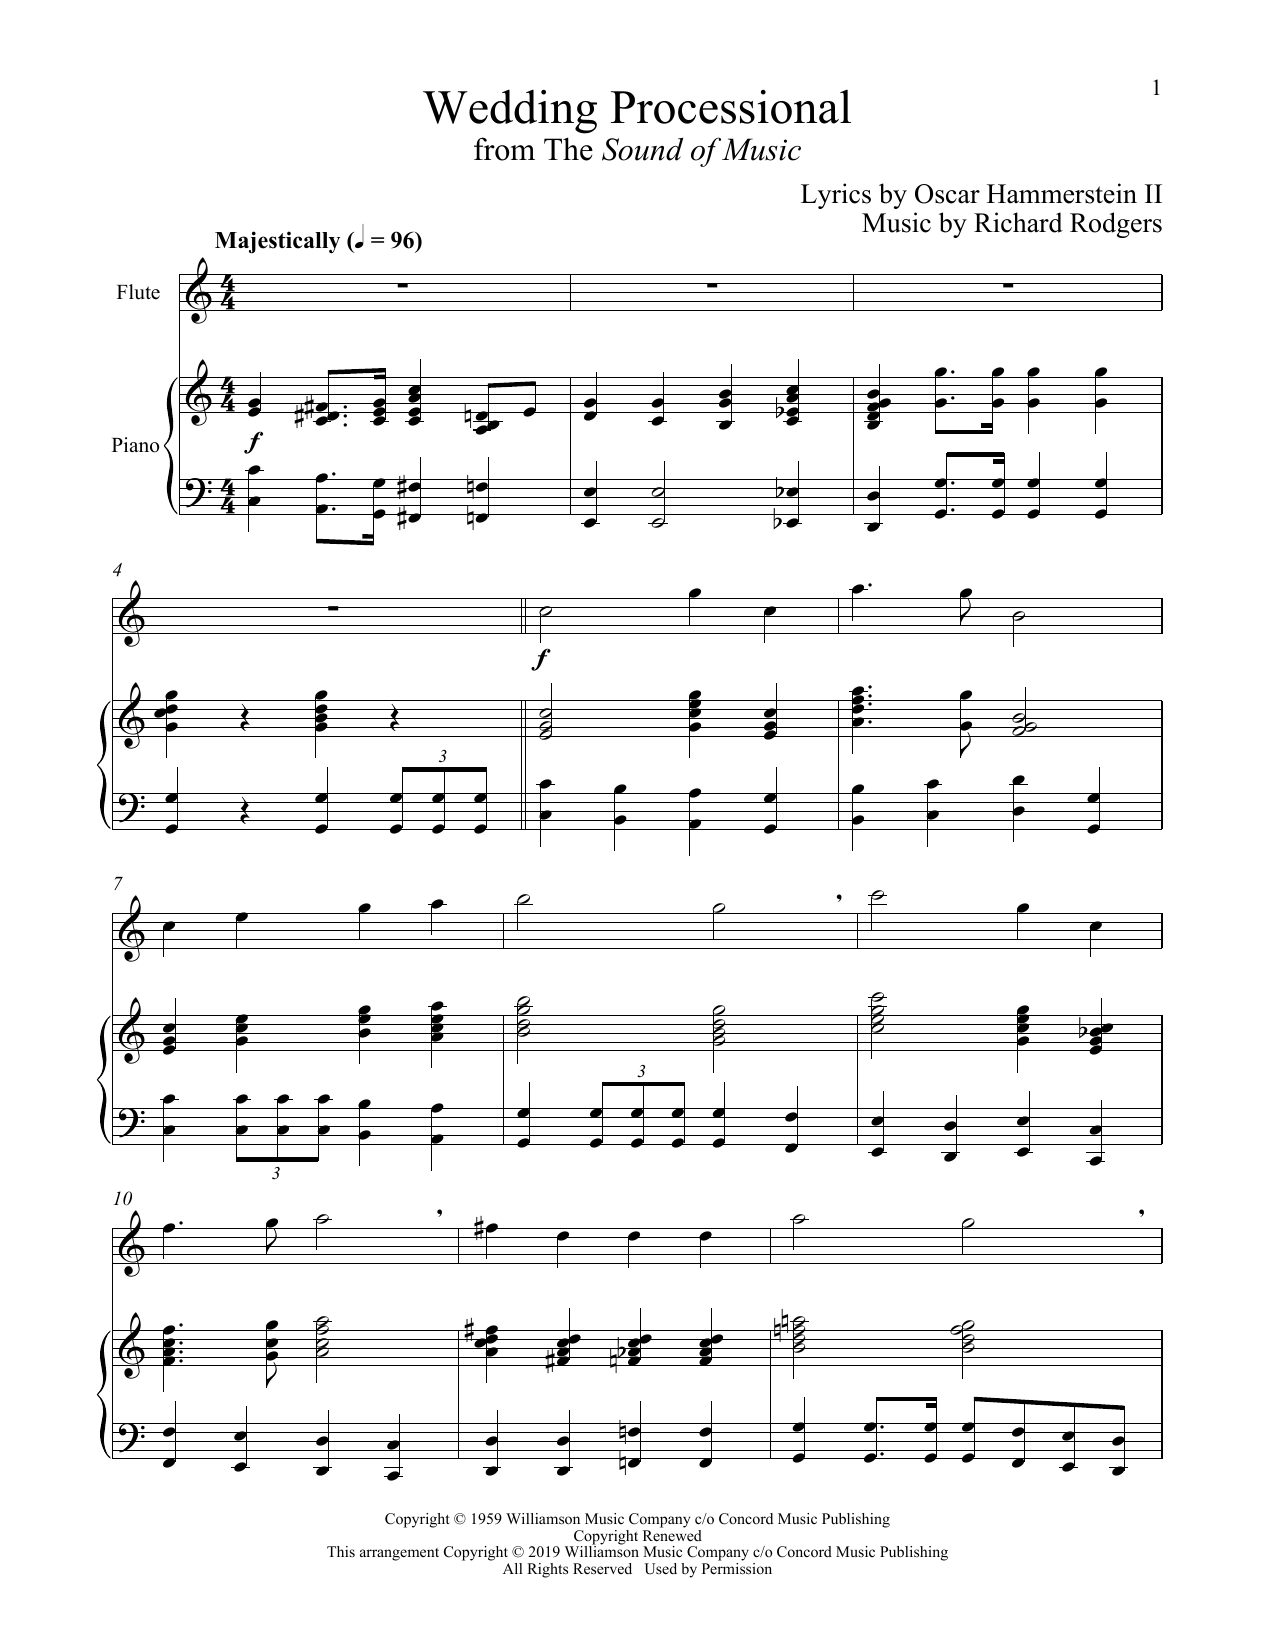 Rodgers & Hammerstein Wedding Processional sheet music notes and chords. Download Printable PDF.